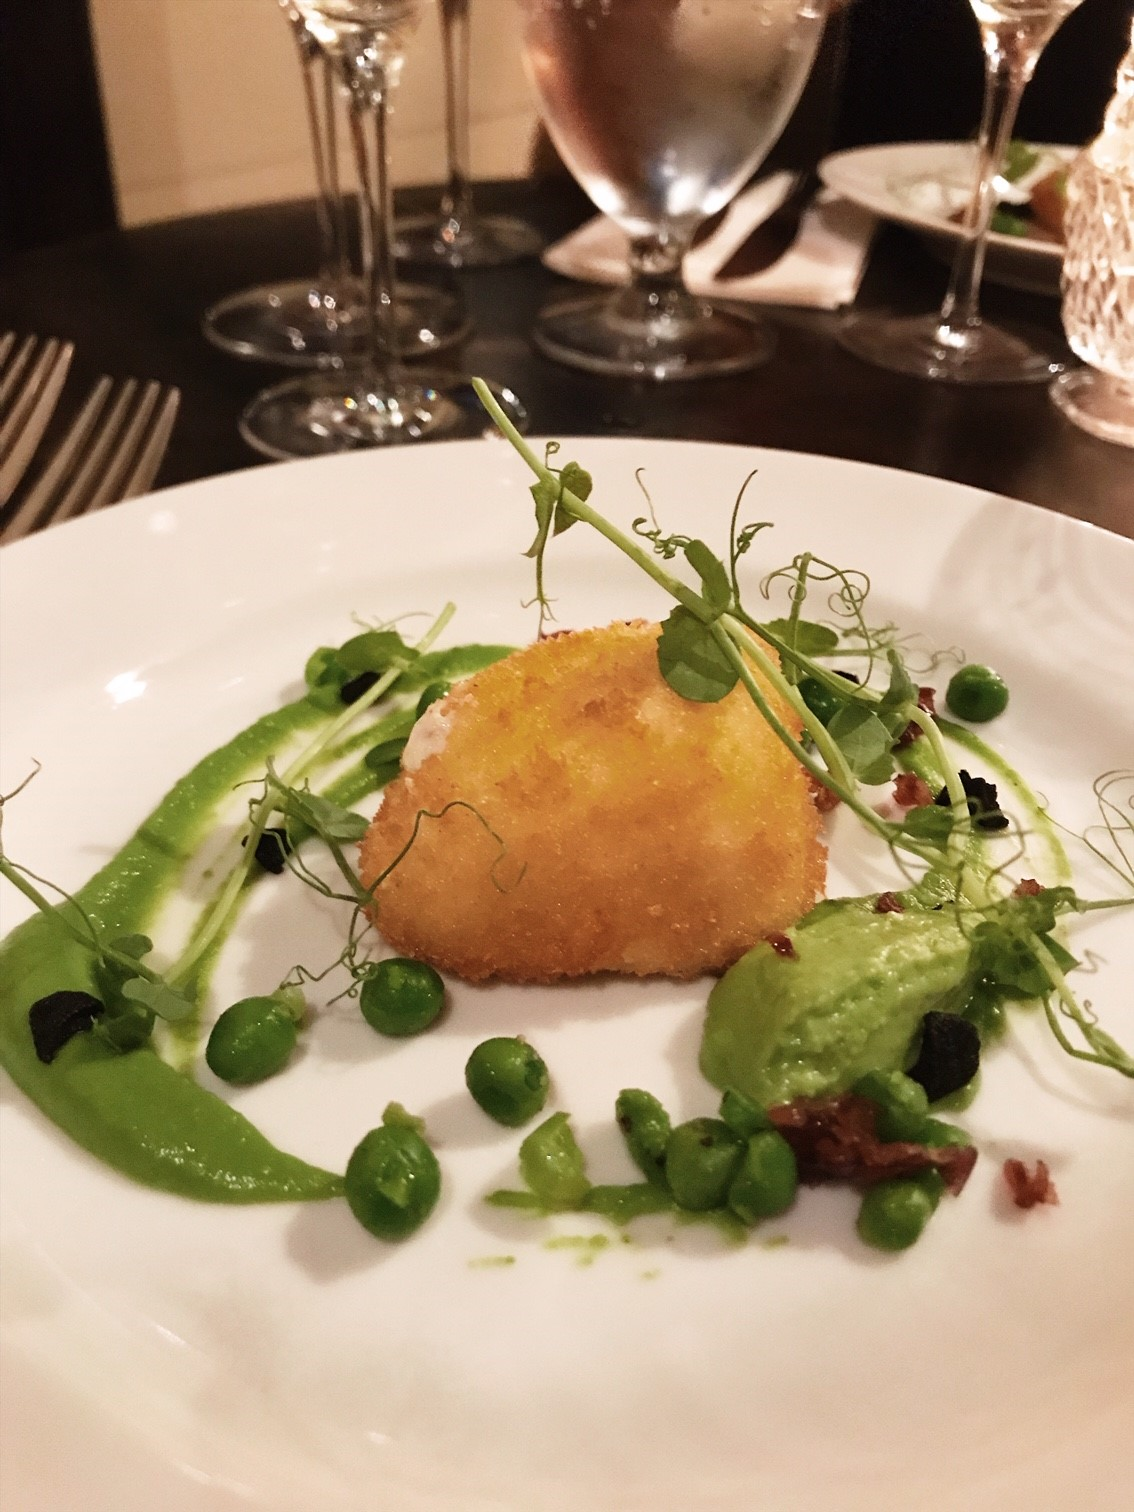 Elena Walch Wine Tasting at the Dove Restaurant - Third Course - Fried Burrata and Textures of Pea